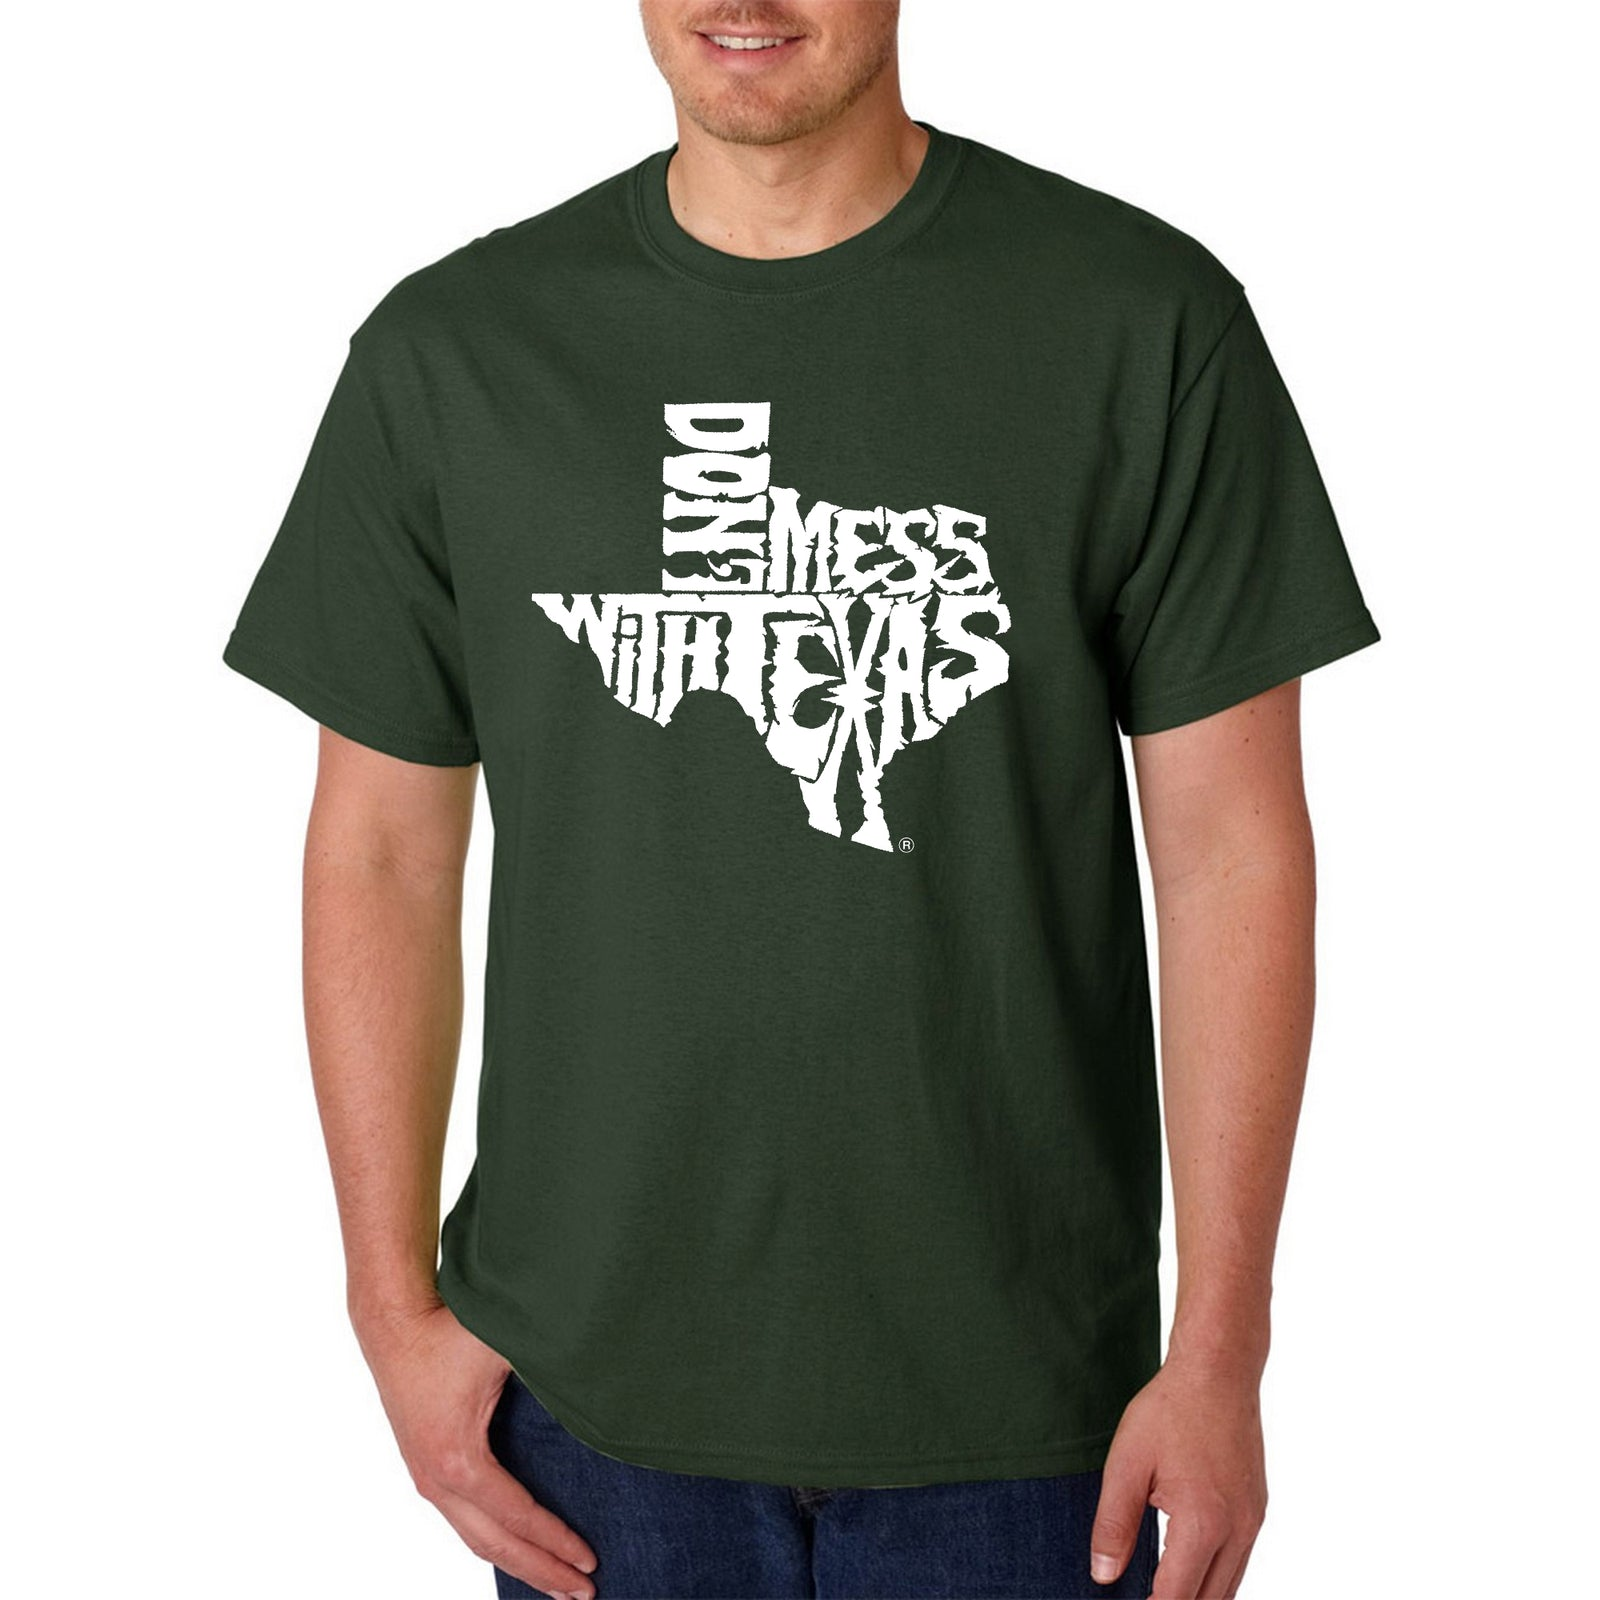 Men's T-shirt - DONT MESS WITH TEXAS